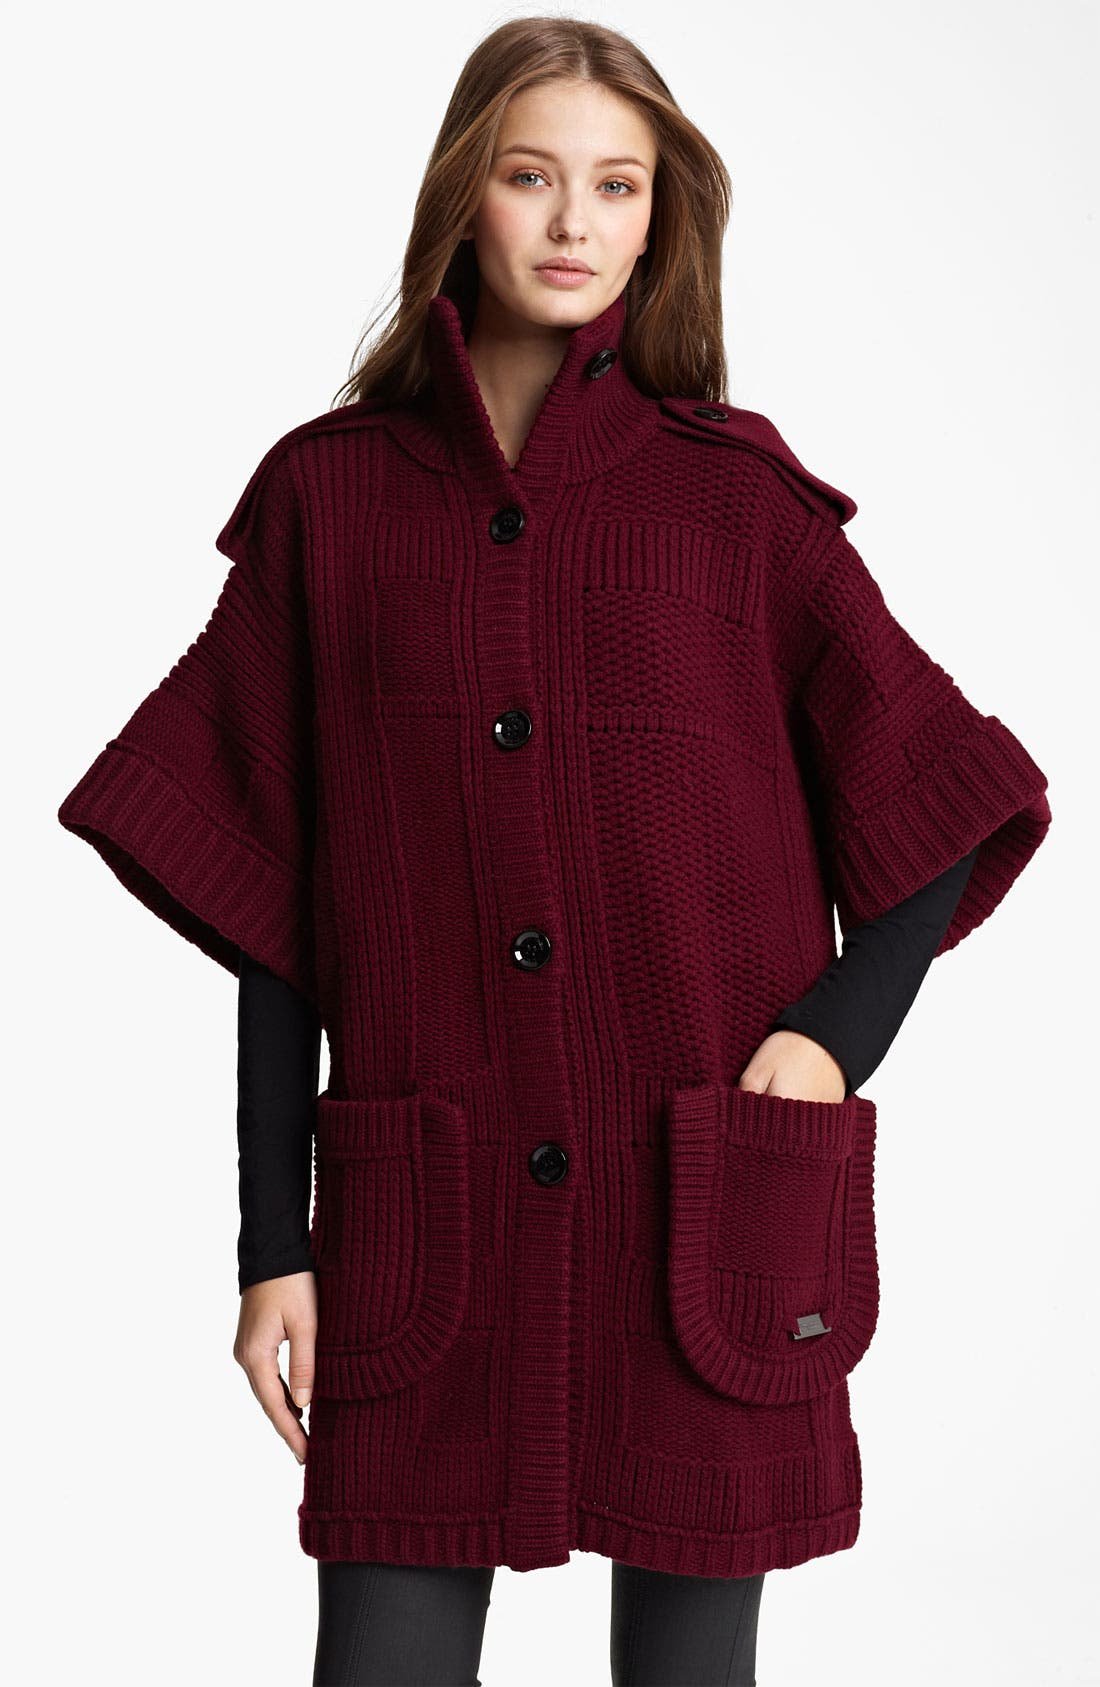 Alternate Image 1 Selected - Burberry Brit Chunky Knit Cardigan (Online Exclusive)